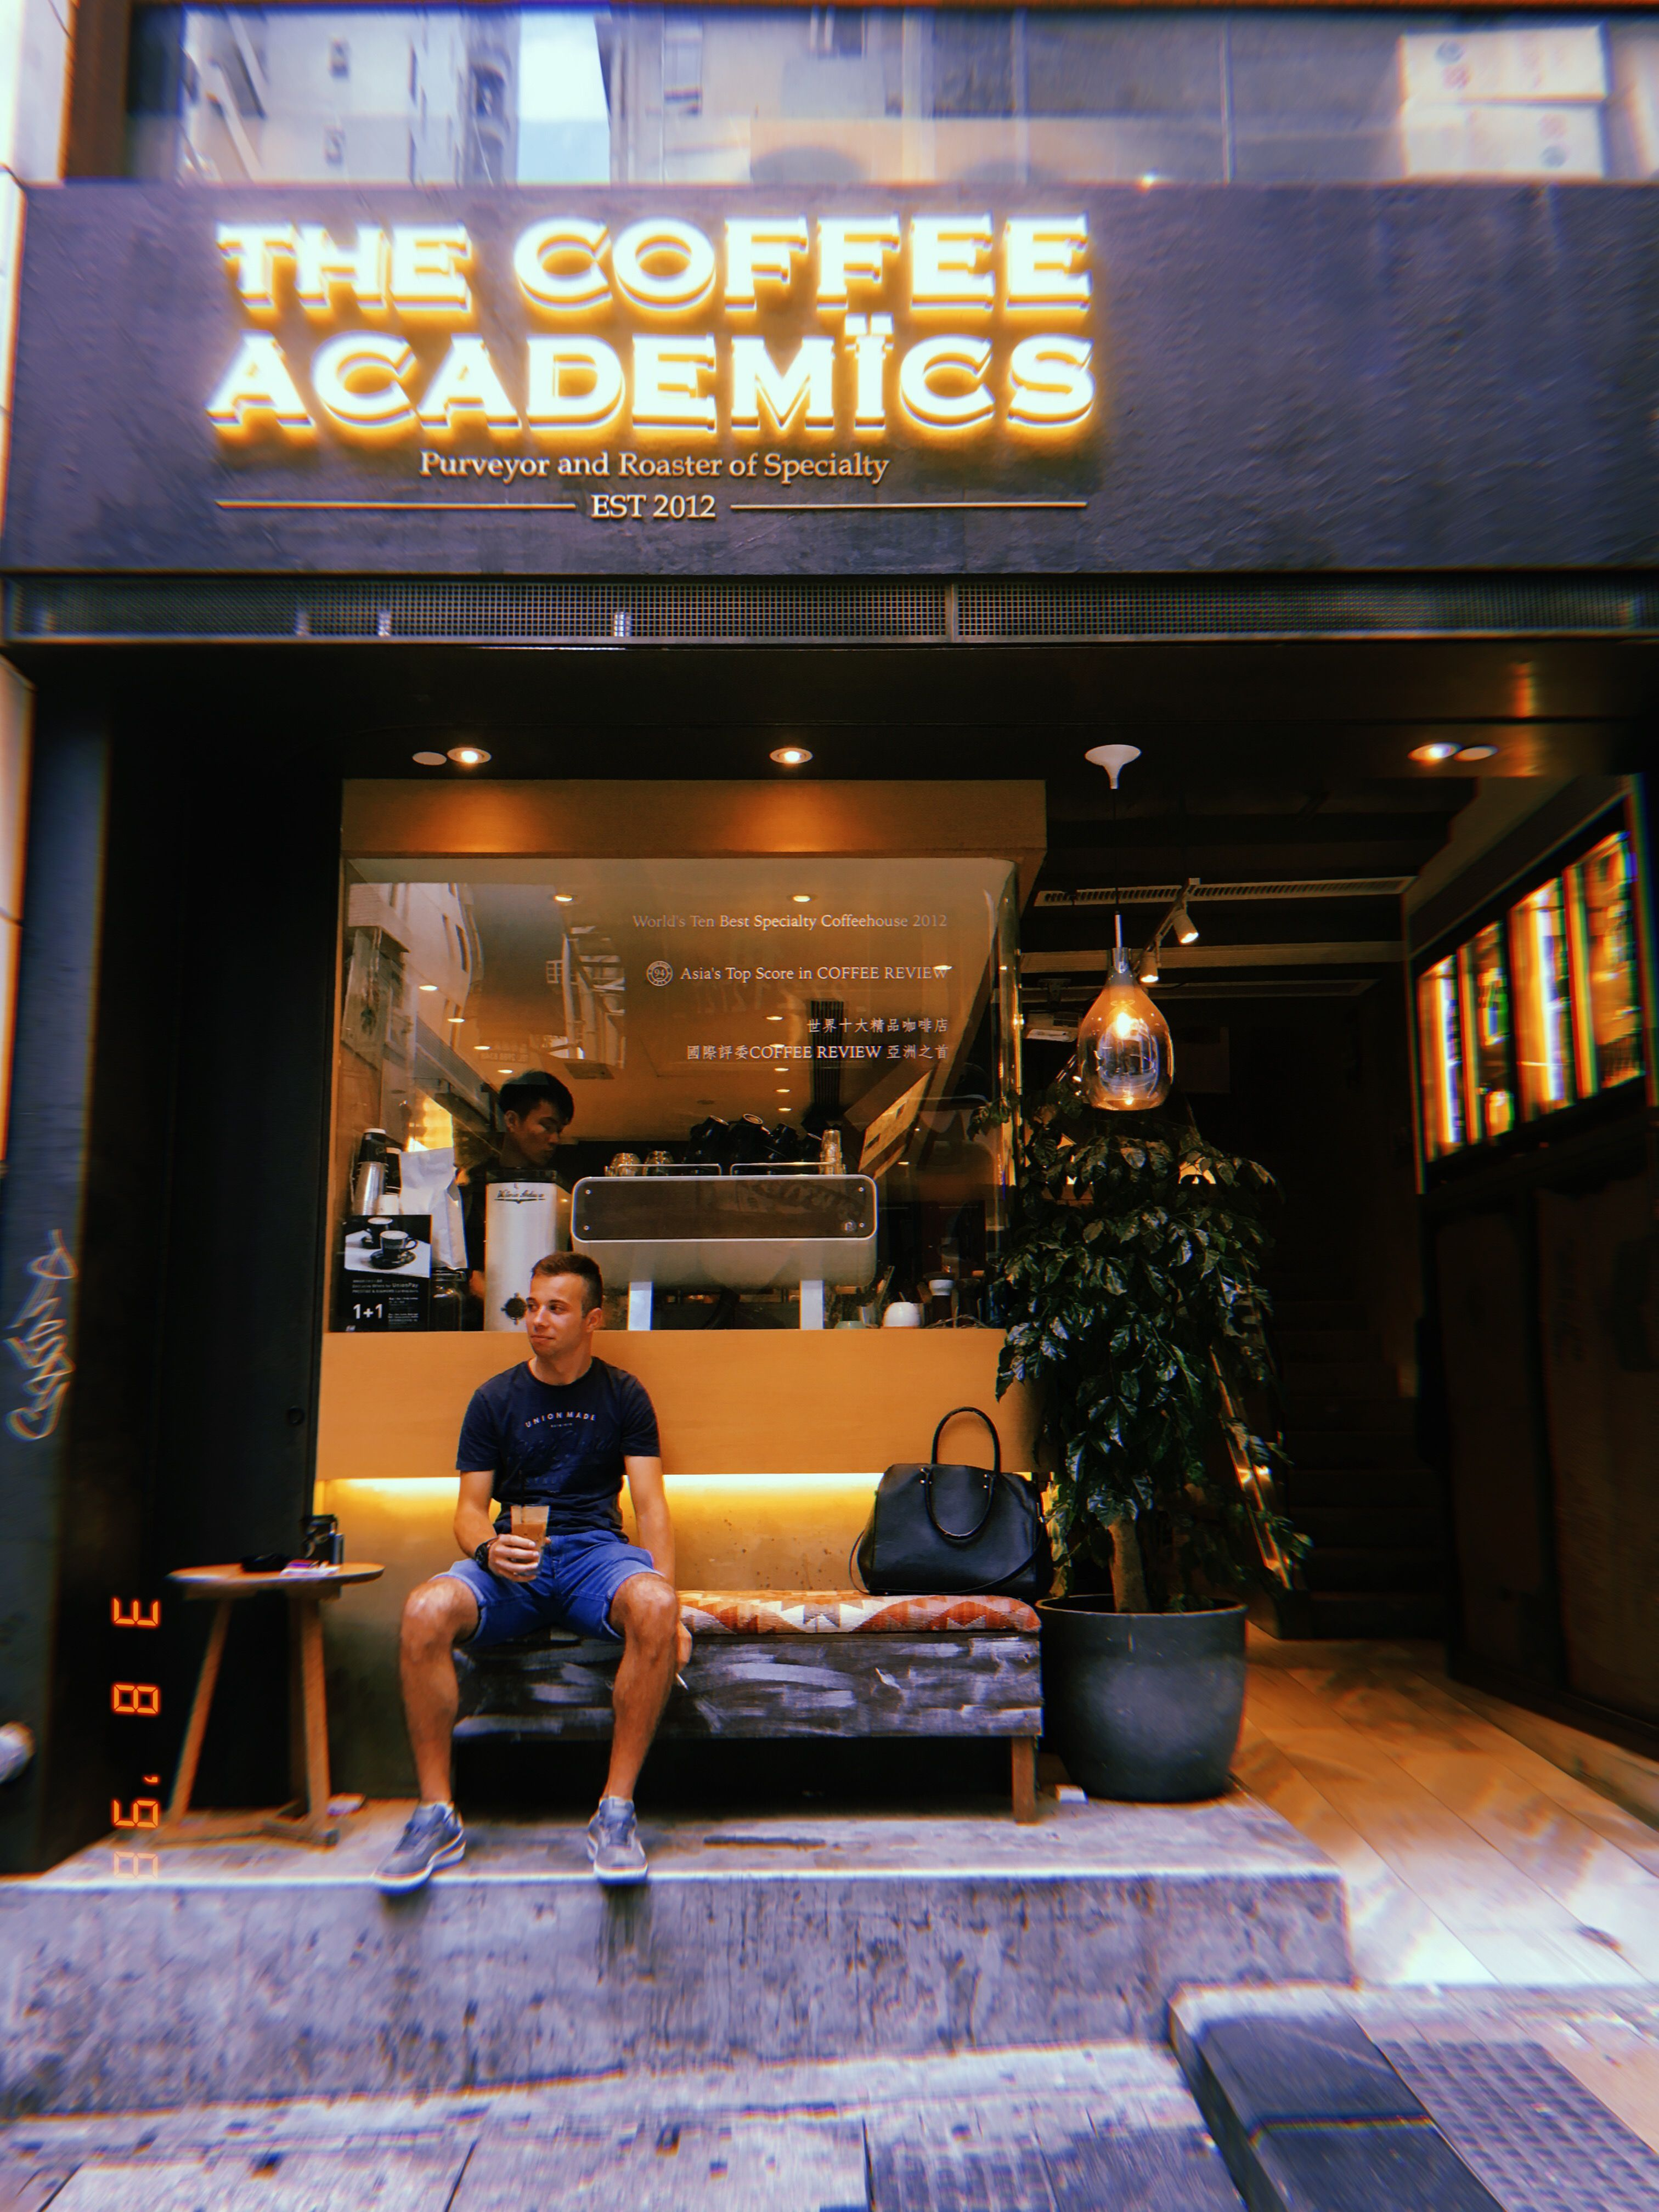 Coffee Academics Cafe Central Hong Kong Travel Photography Food Things To Do In Instagram Fashion Hot Hong Kong Travel Photography Nyc Bars Central Hong Kong